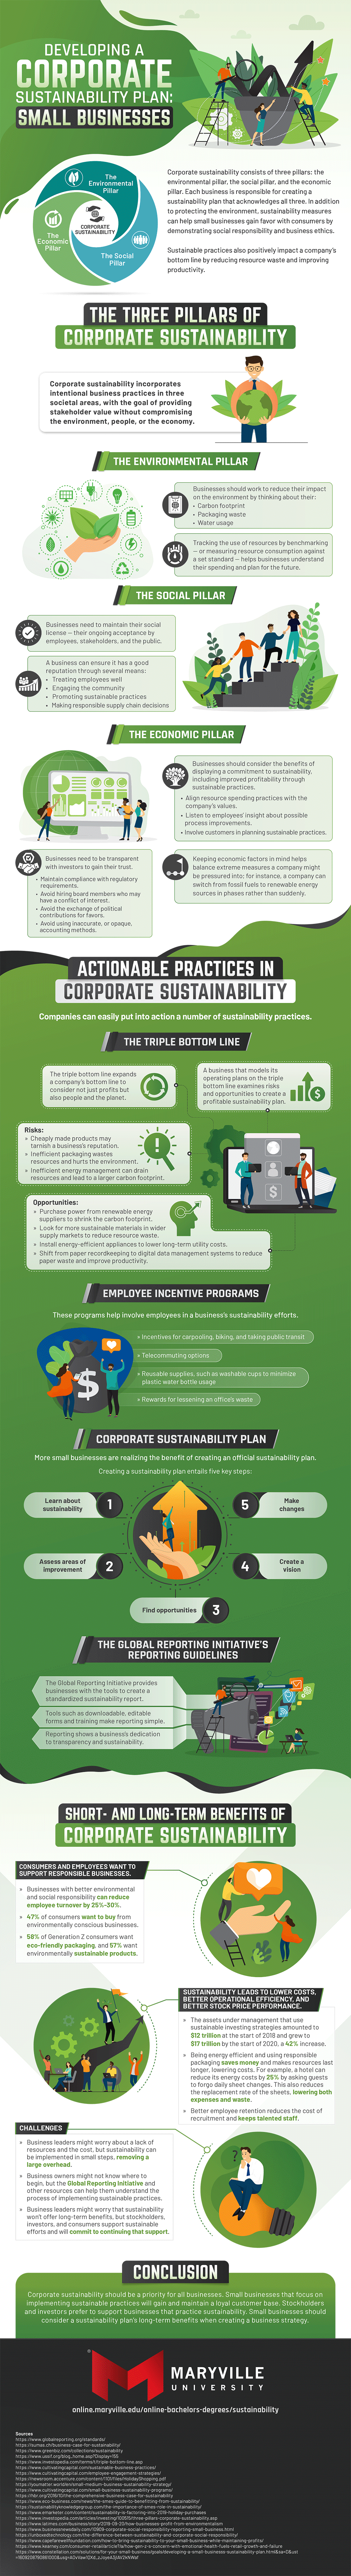 Information on how small businesses can develop a corporate sustainability plan.